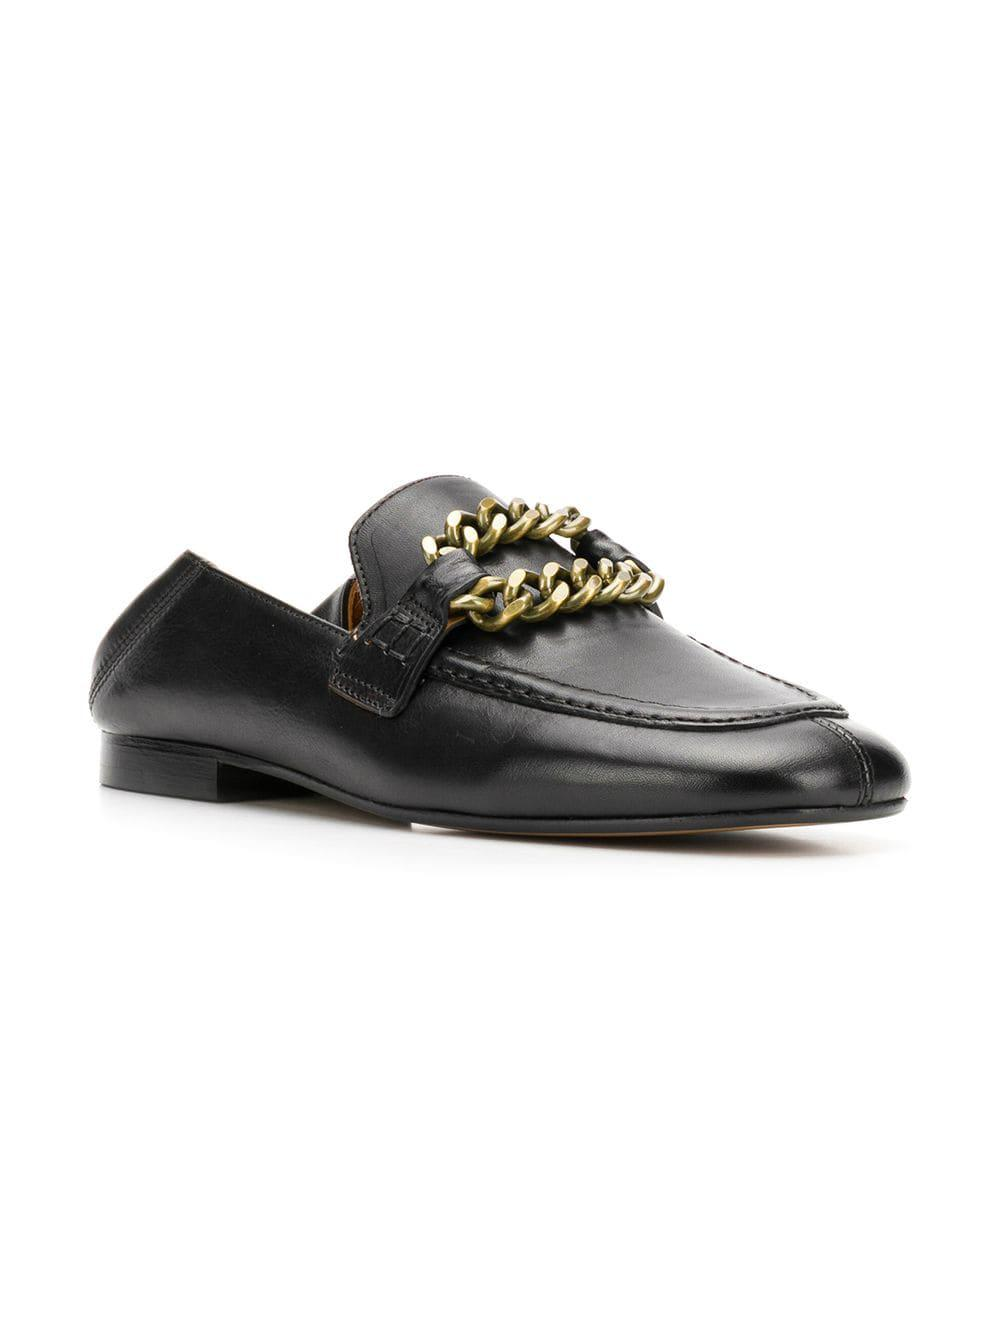 5960f837fc5 Lyst - Isabel Marant Firlee Loafers in Black